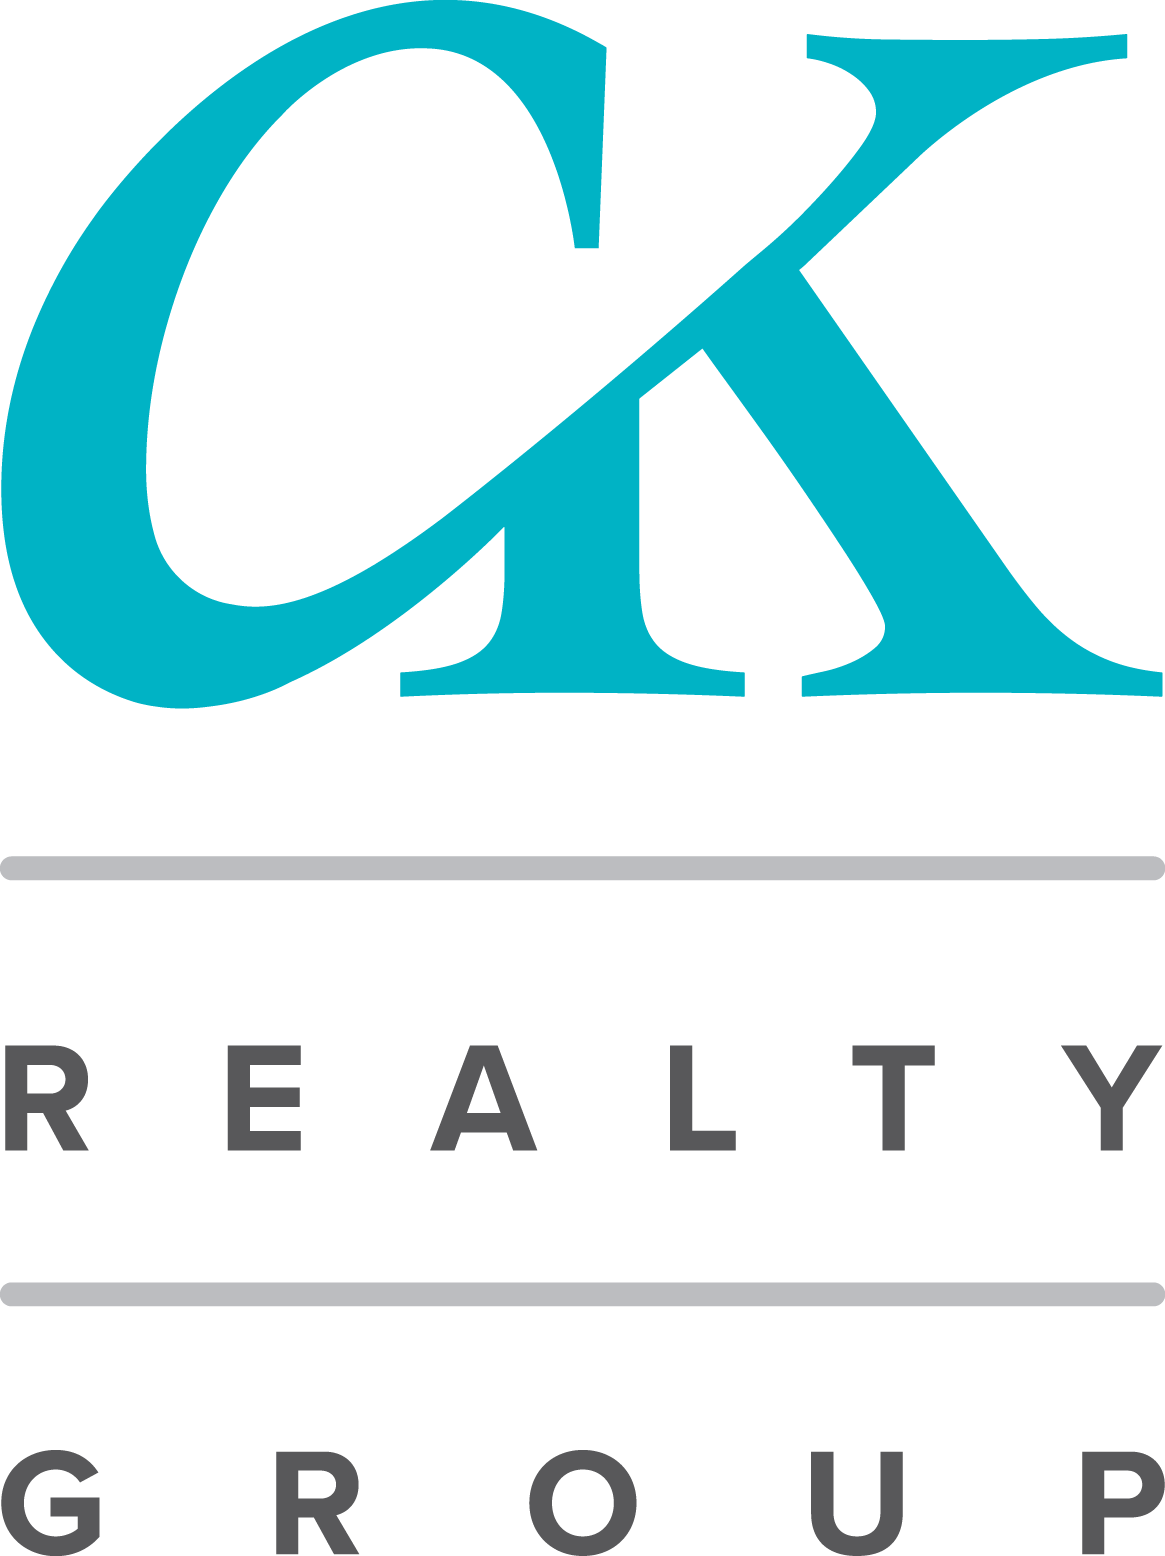 CK Realty uses Robert Miller Photography for their real estate photography in Northern Virginia